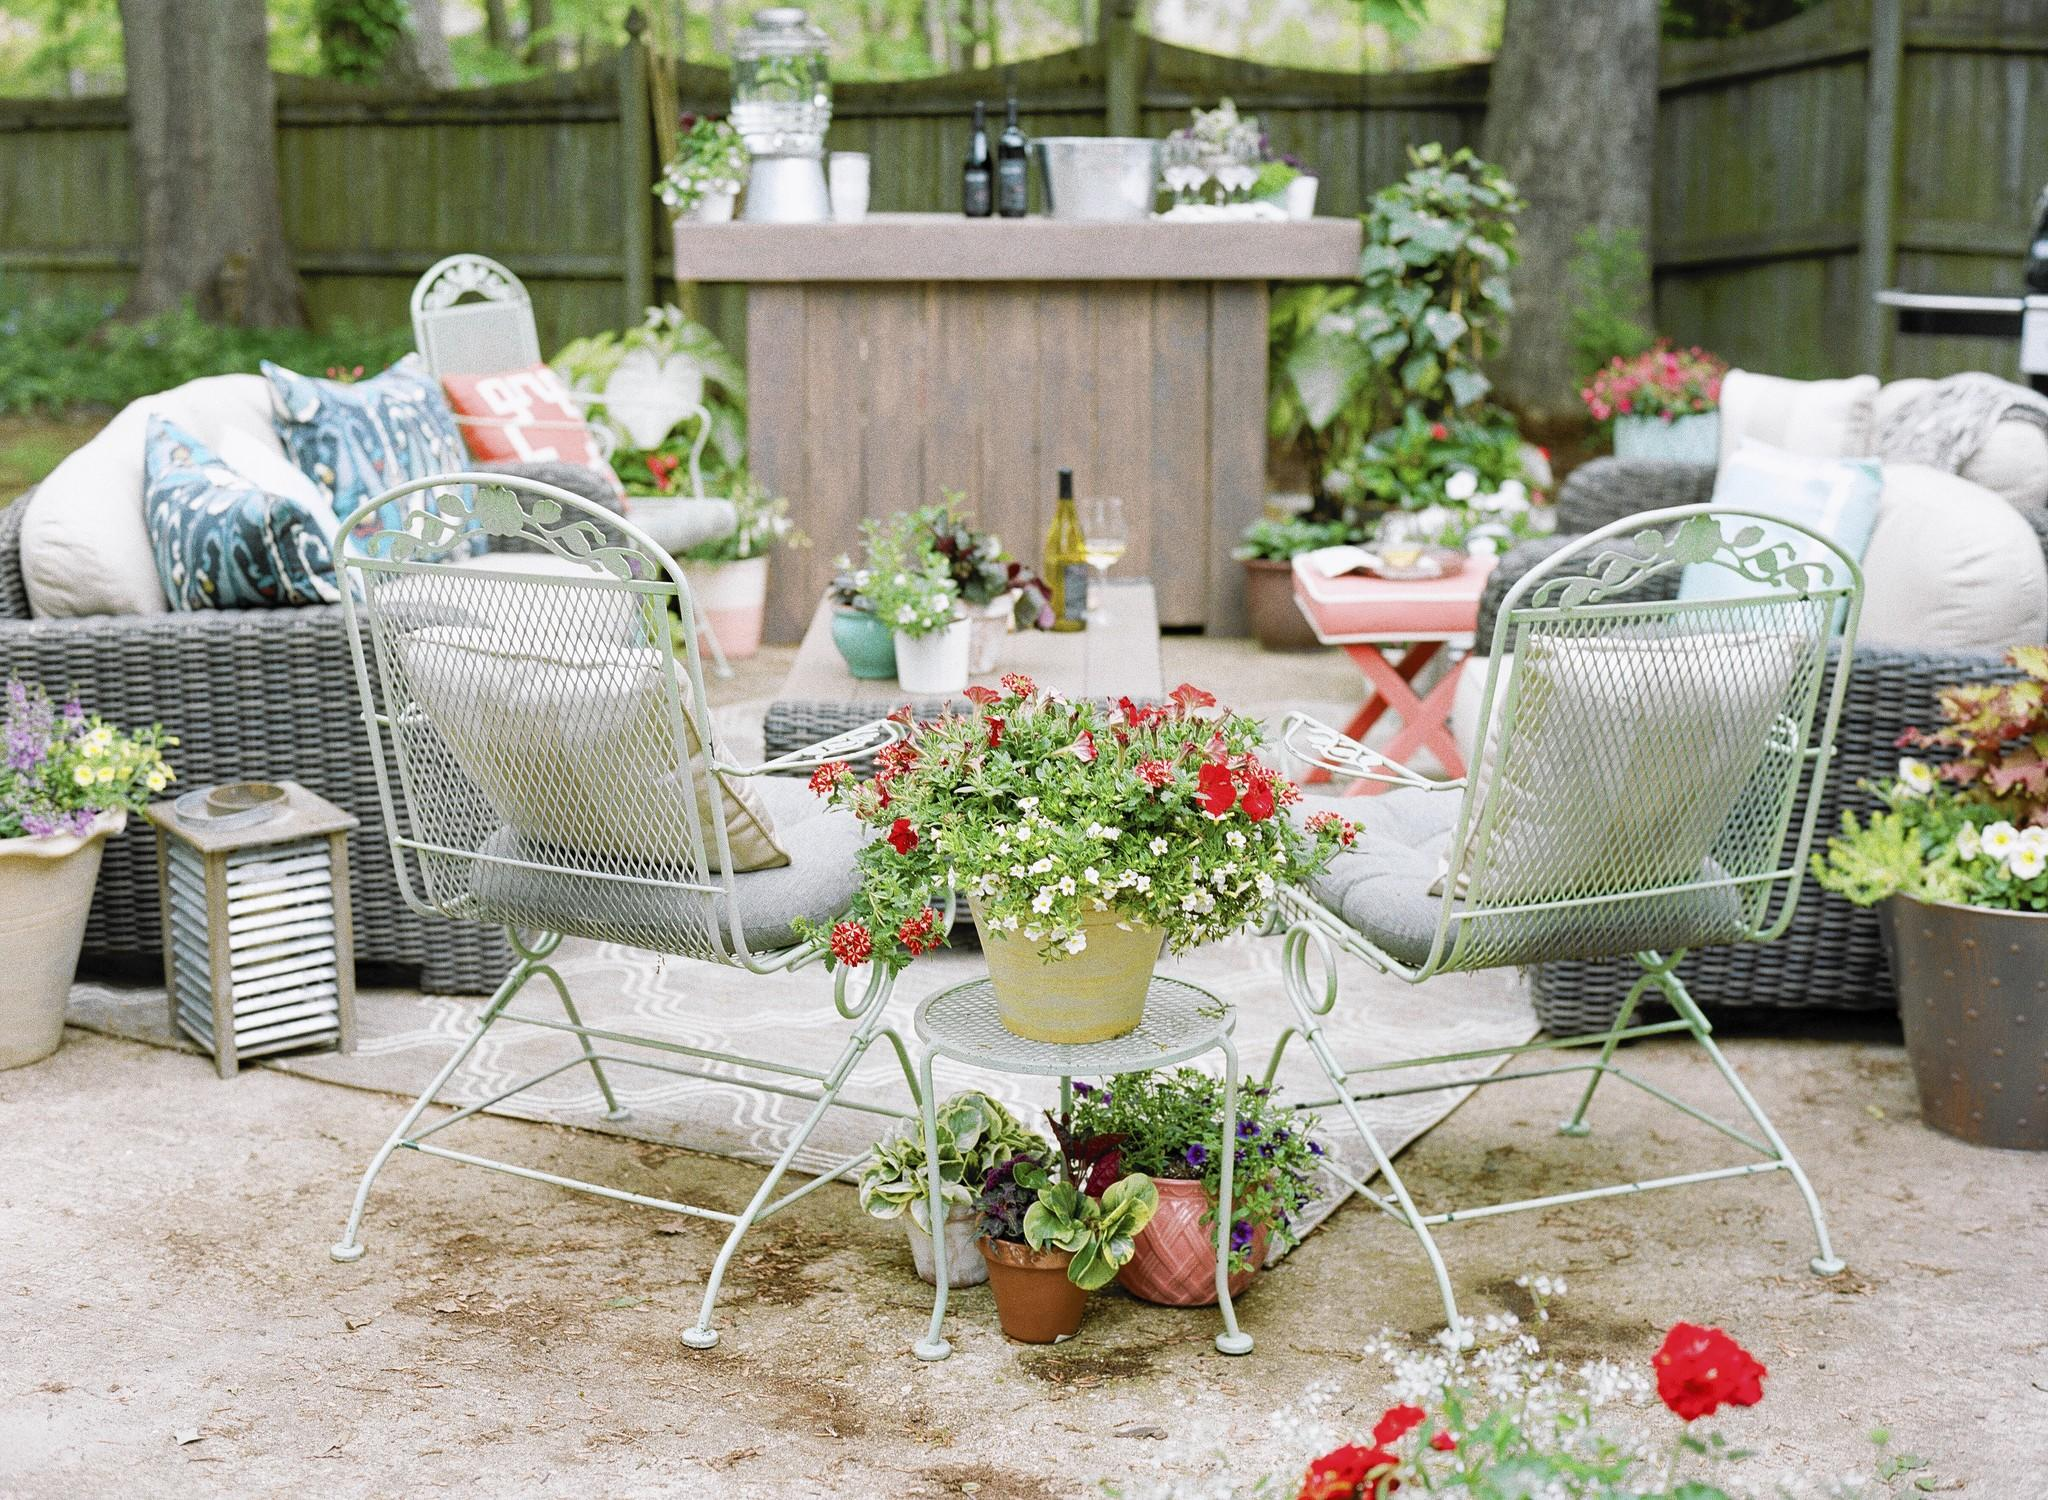 To throw the perfect summer party, come up with a theme and then wow with the details.